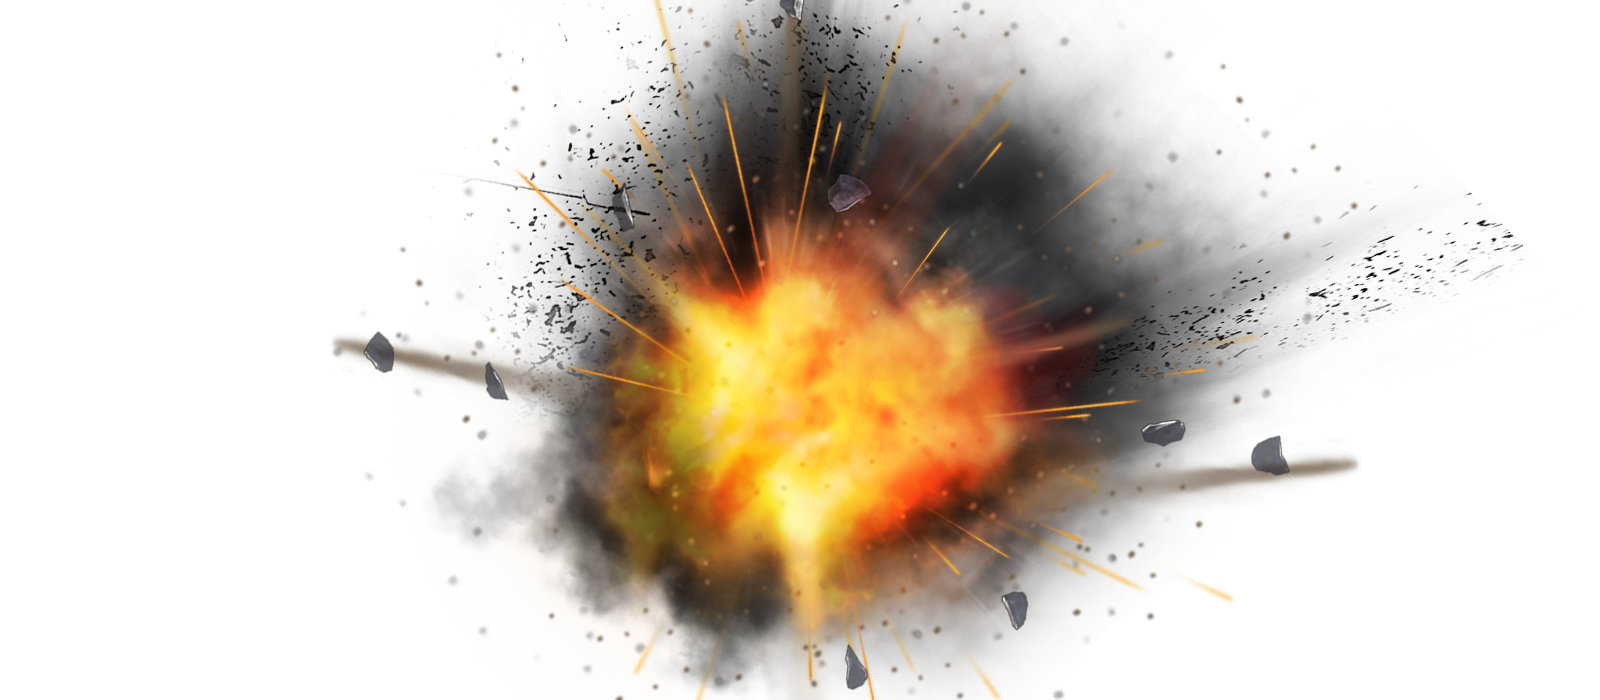 Blast png. Explosion images nuclera free